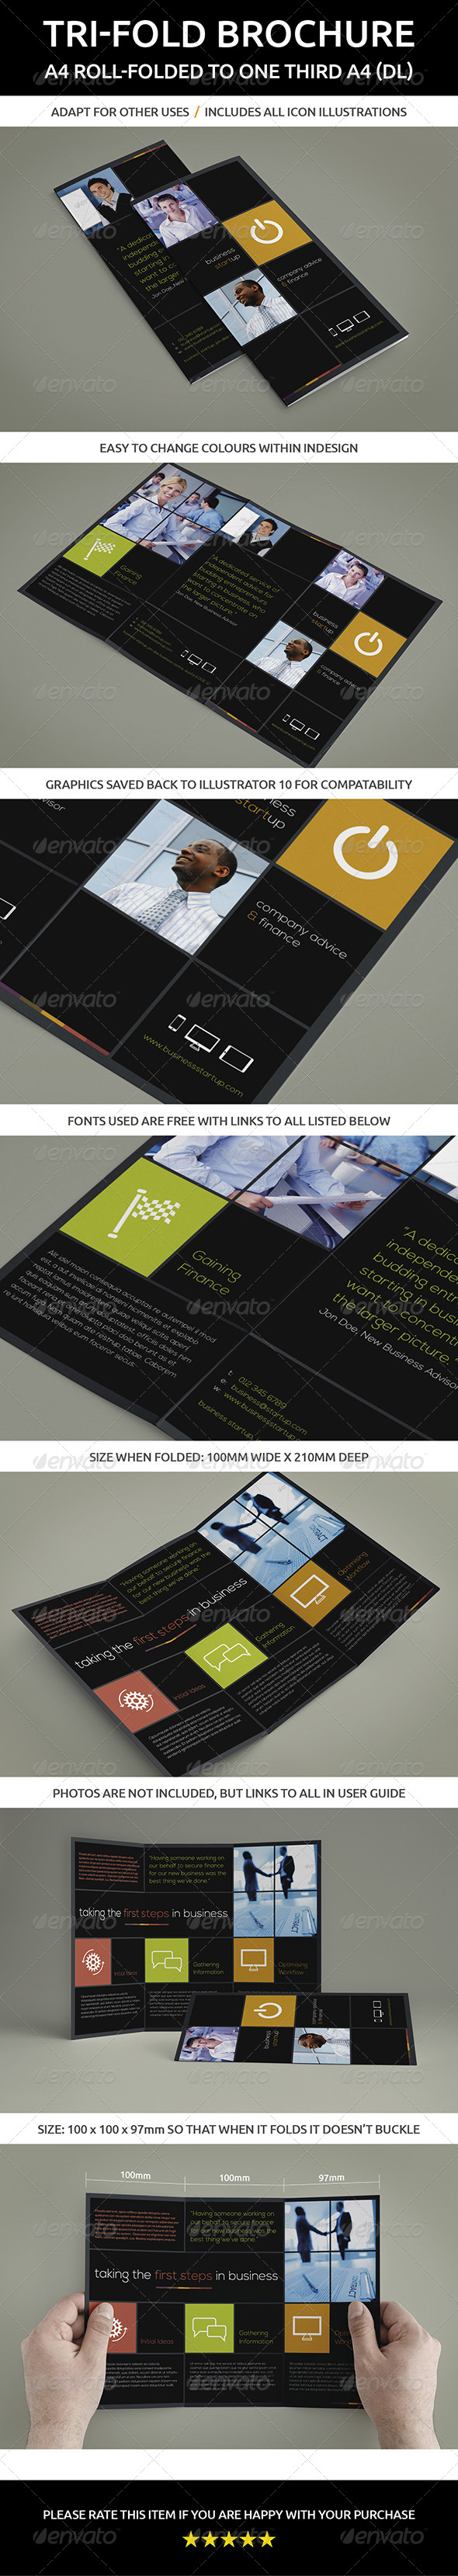 GraphicRiver Tri-fold Brochure A4 roll-folded to one third A4 6041422